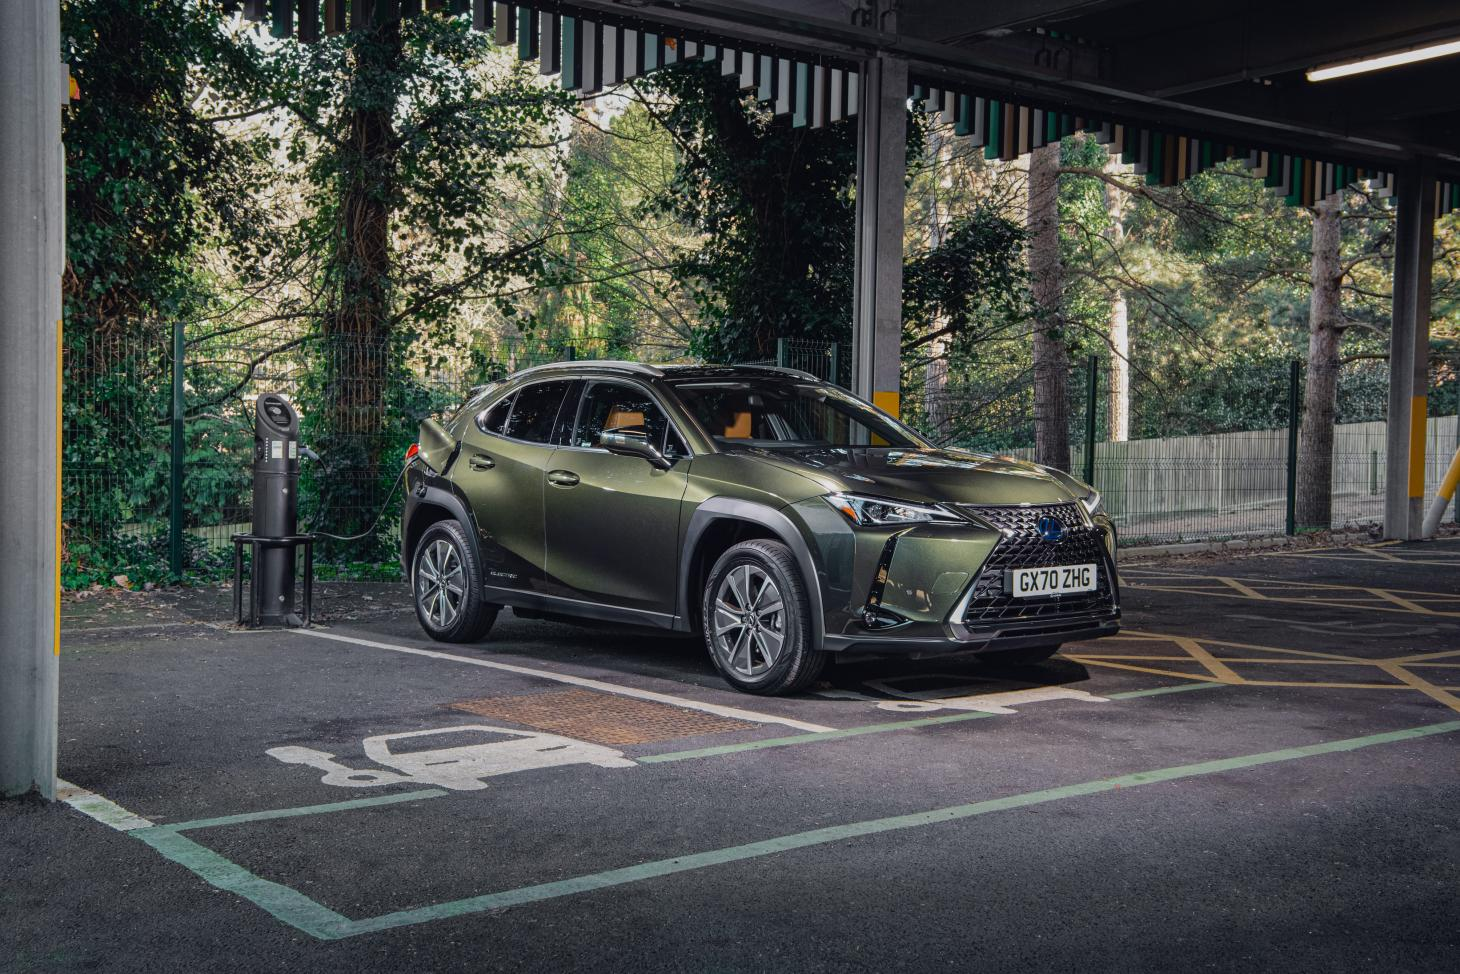 The Lexus UX 300e should reach 80% of its 196 mile range in under an hour of fast charging